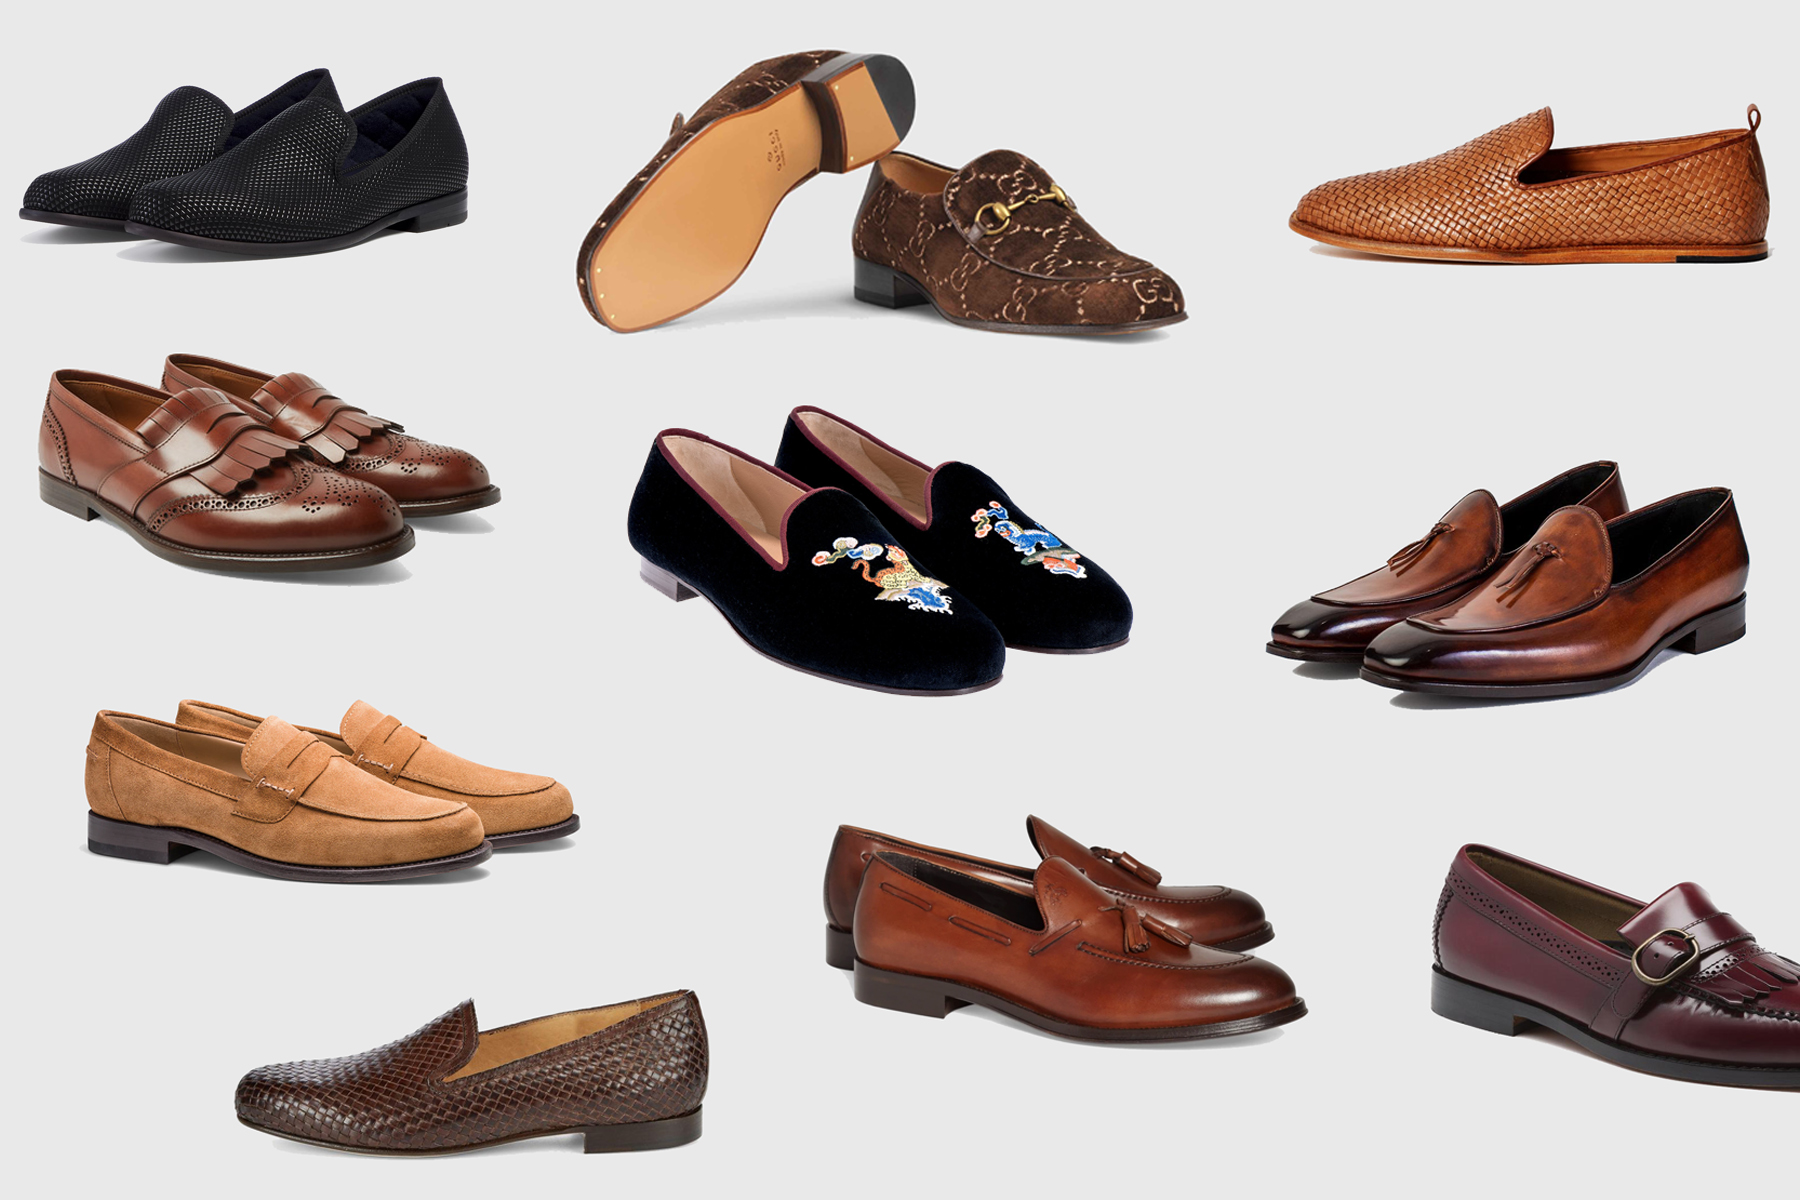 The 7 Different Styles of Loafer